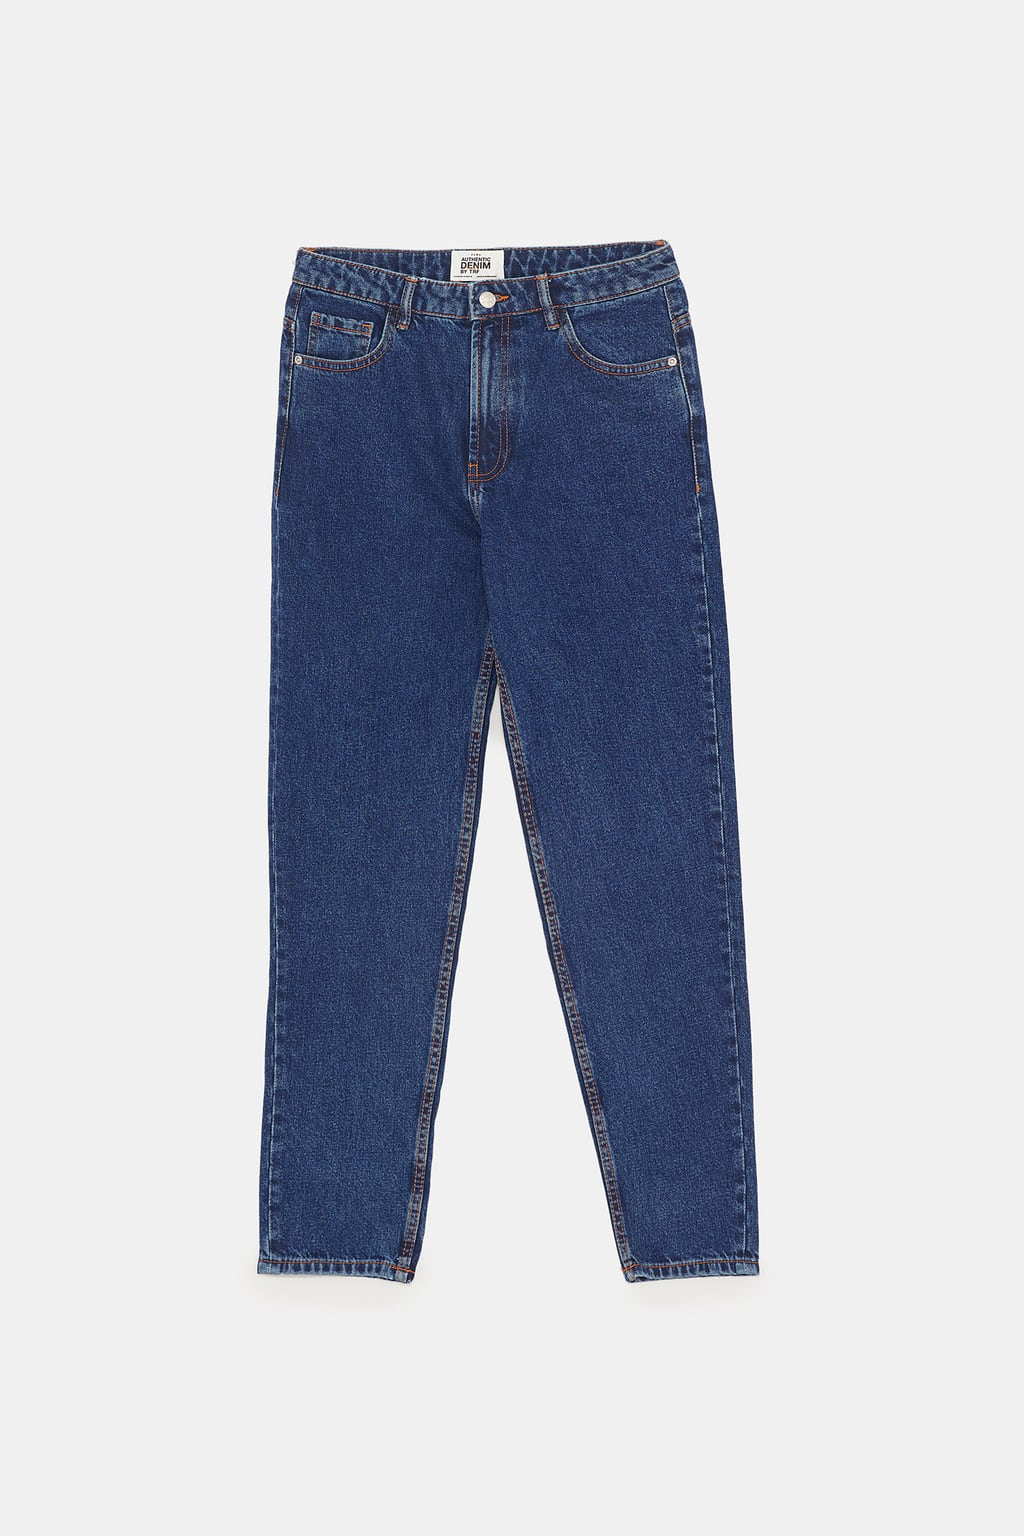 Image 11 de JEAN MOM FIT AUTHENTIC DENIM de Zara